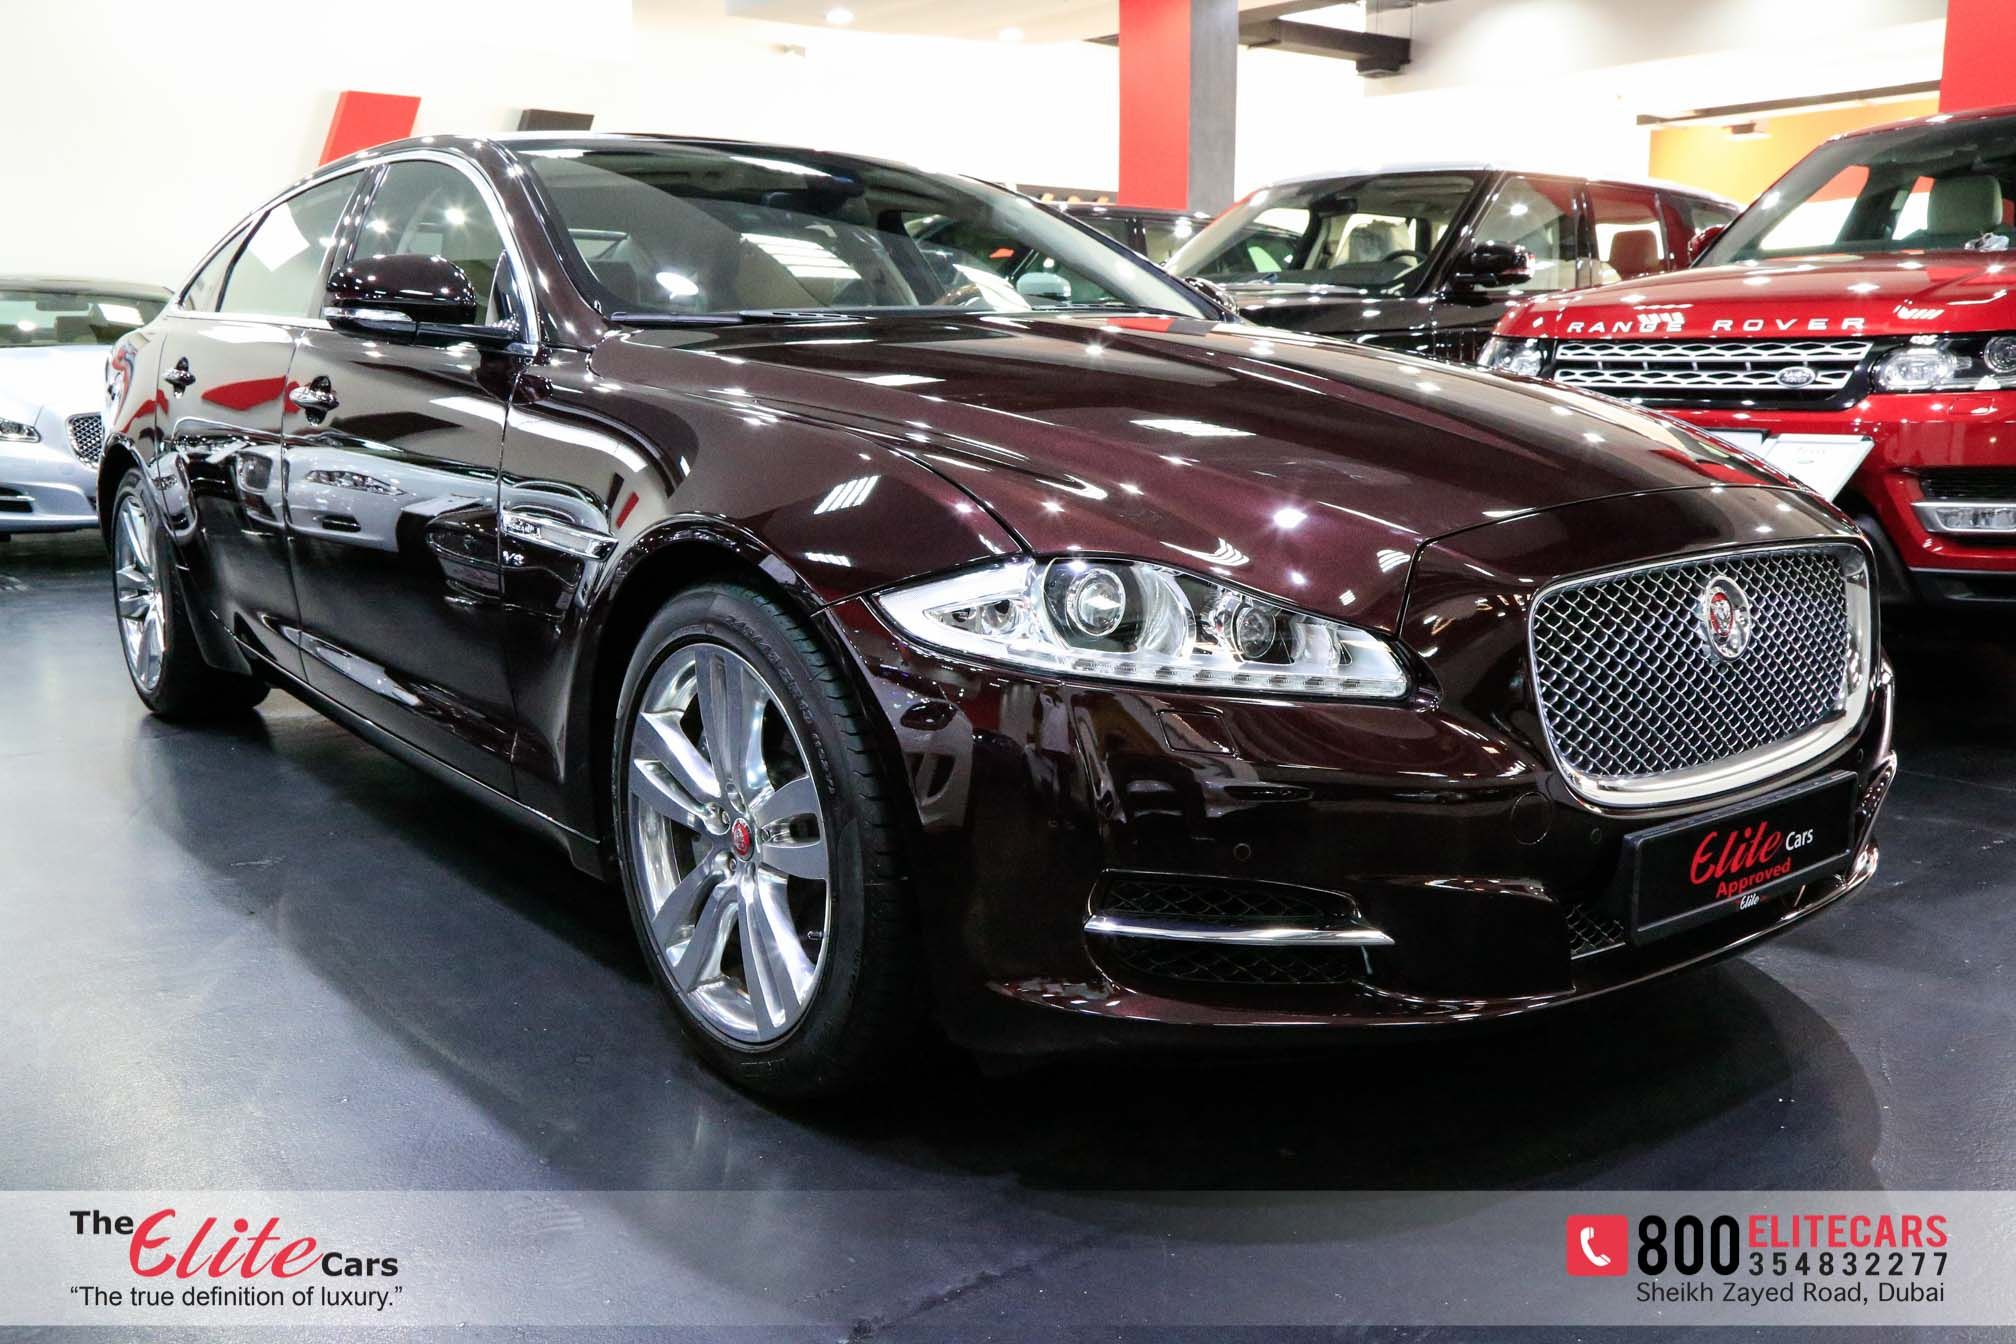 Jaguar Xjl 2014 for Sale in Dubai, AED 219,000 , Caviar